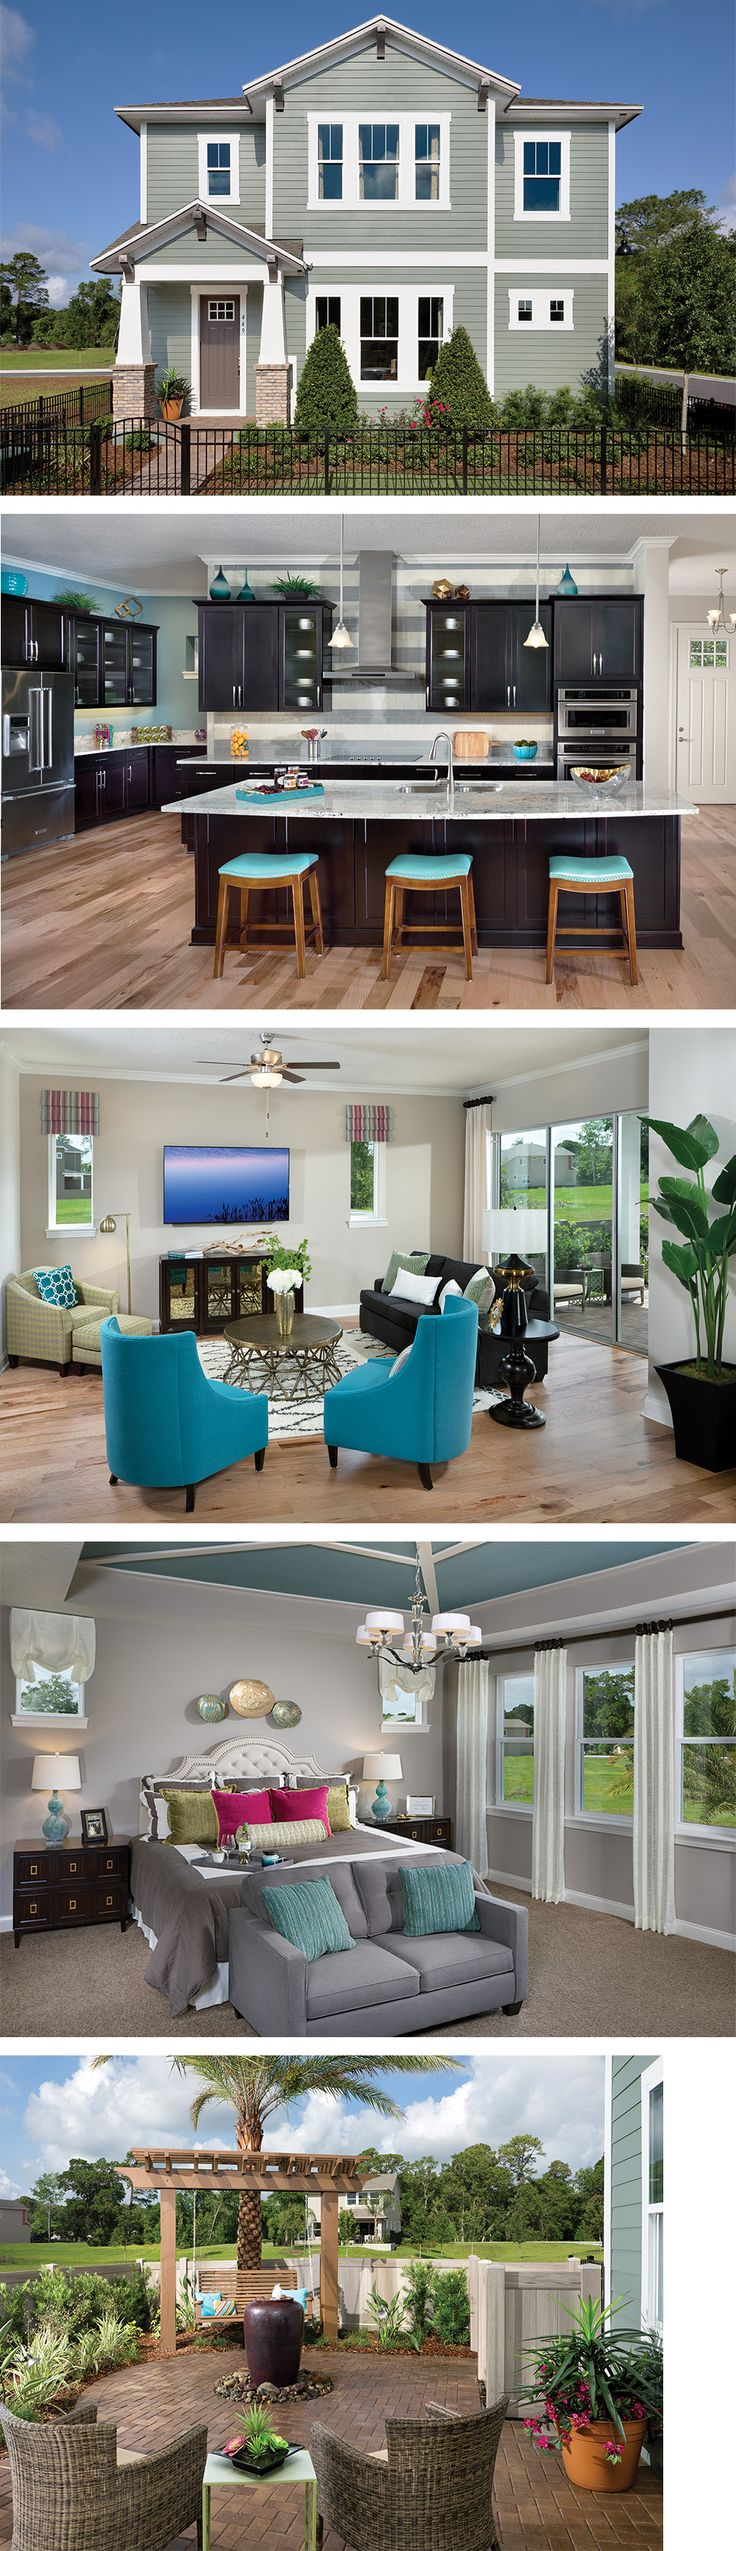 best 25 new home plans ideas on pinterest next gen homes 2 blueprints for houses find your new home